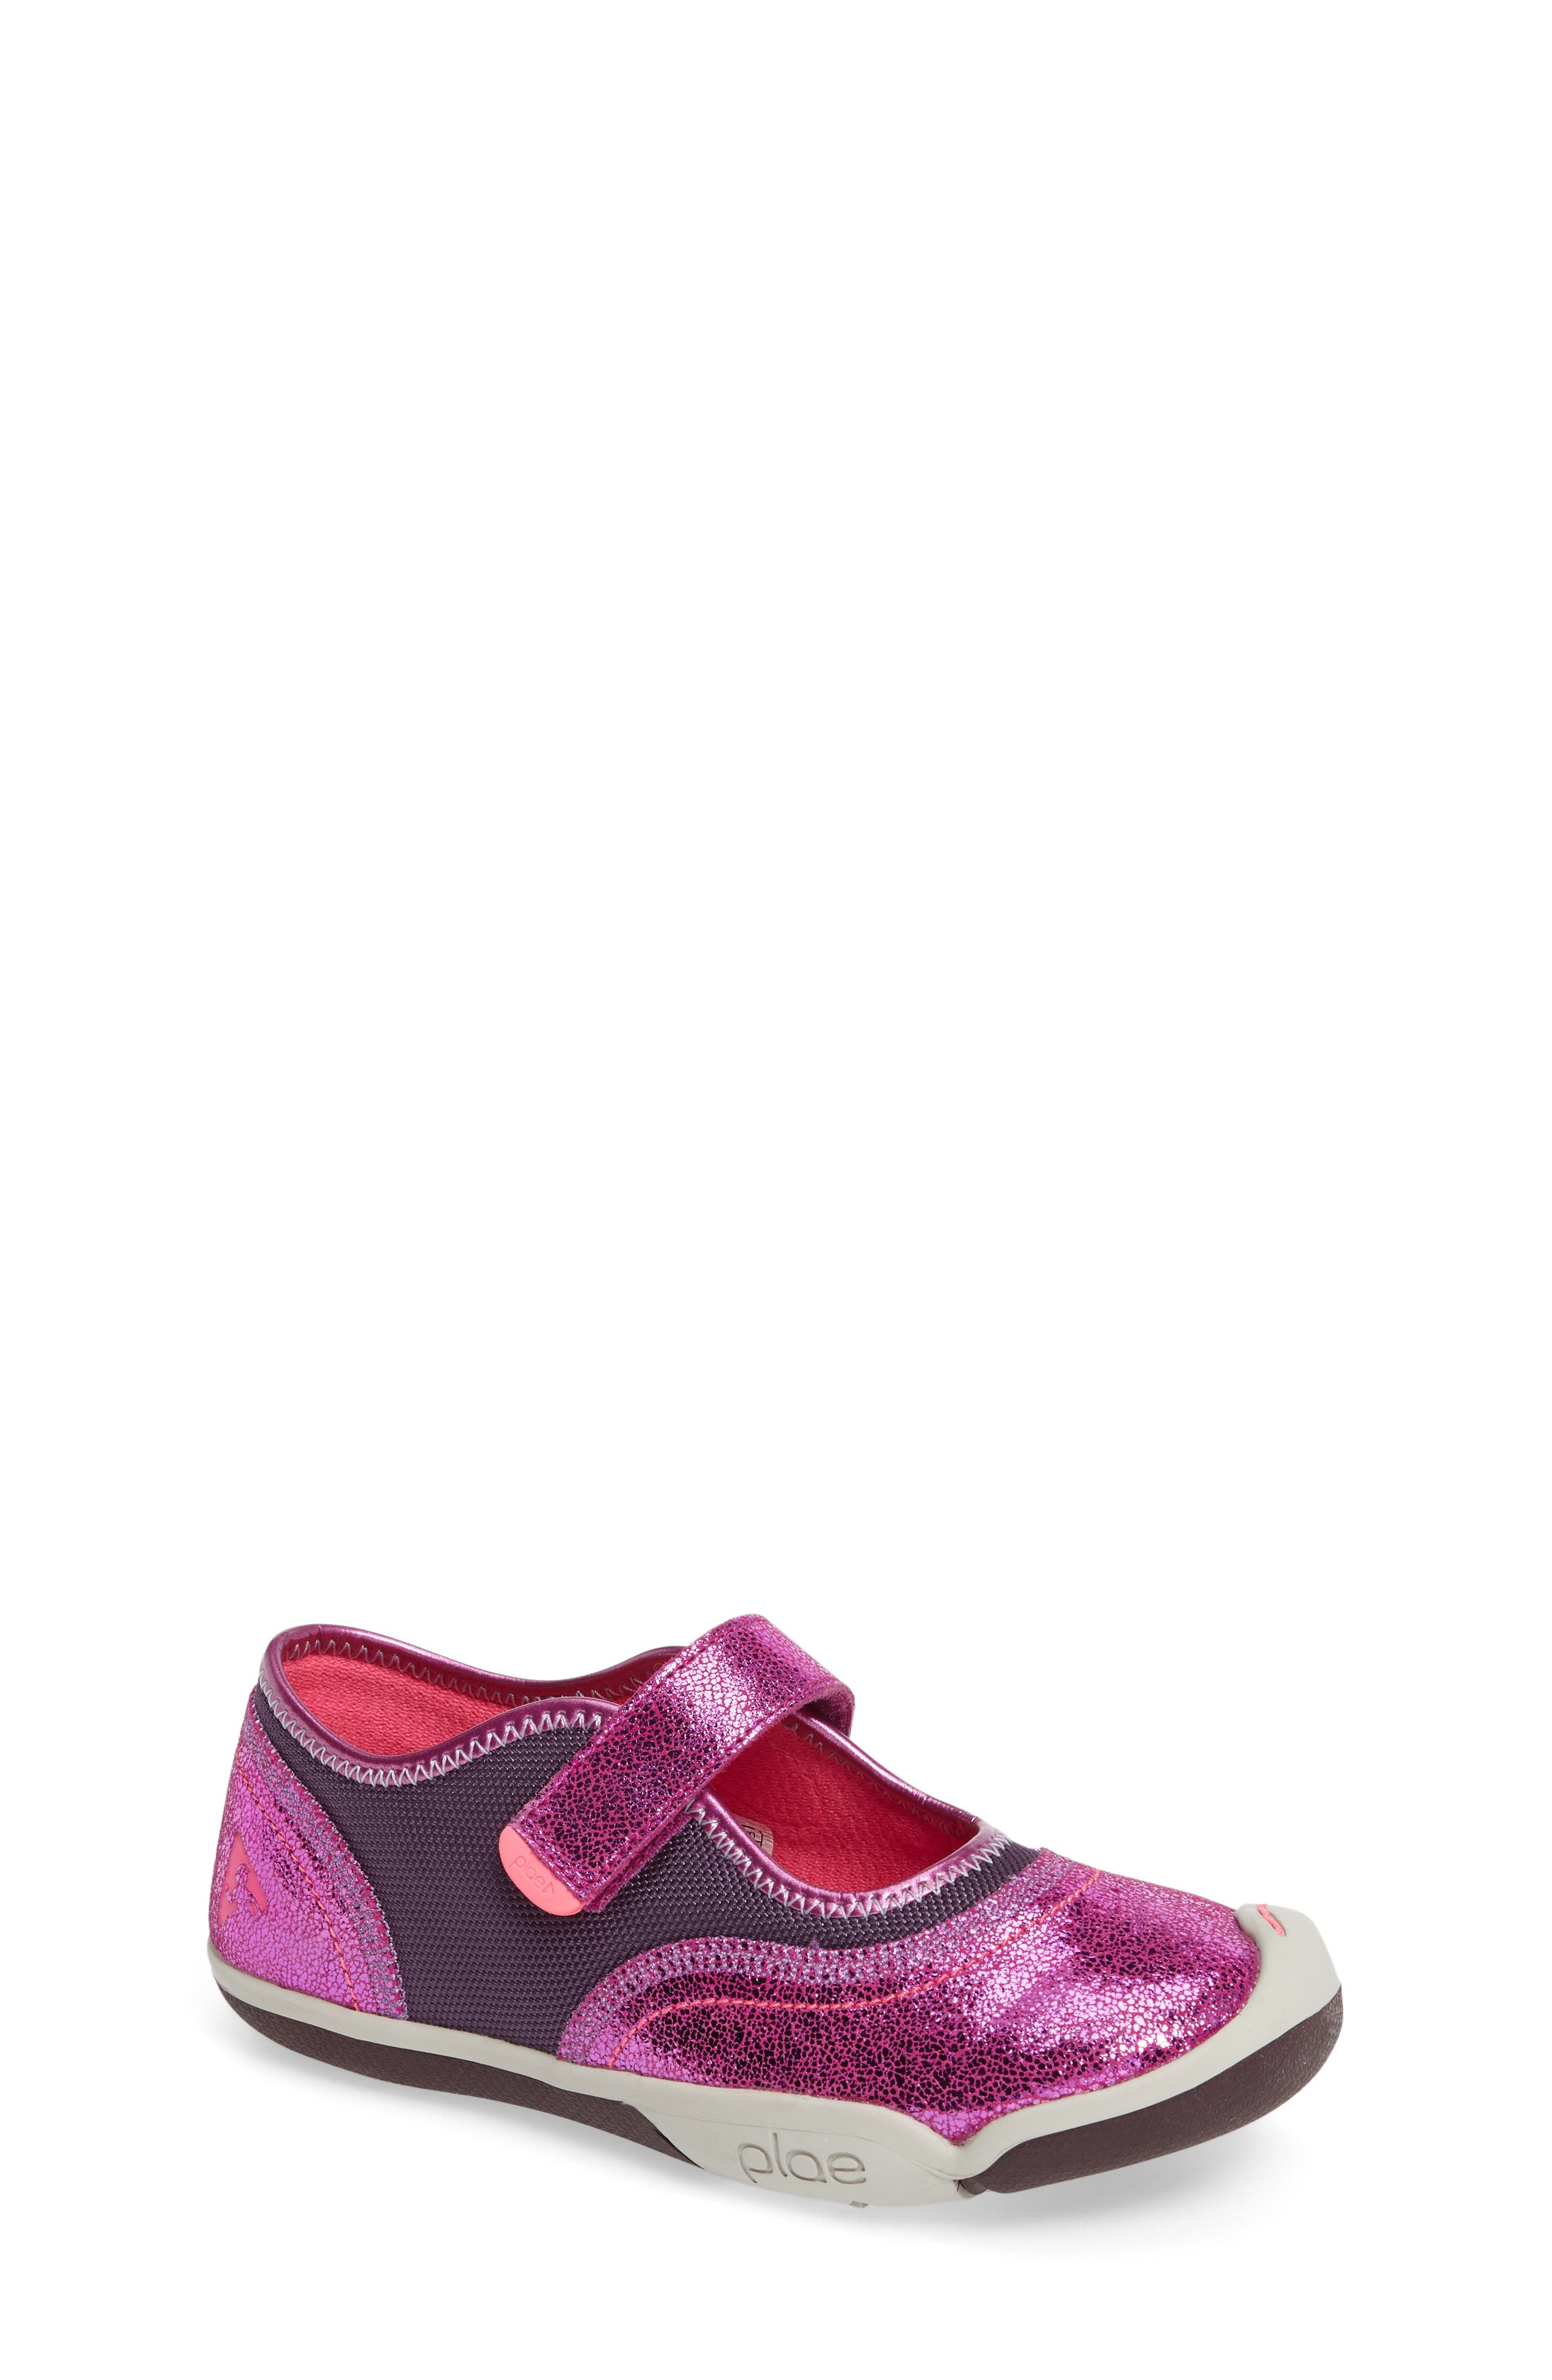 Emme Mary Jane,                         Main,                         color, Viola Metallic Leather